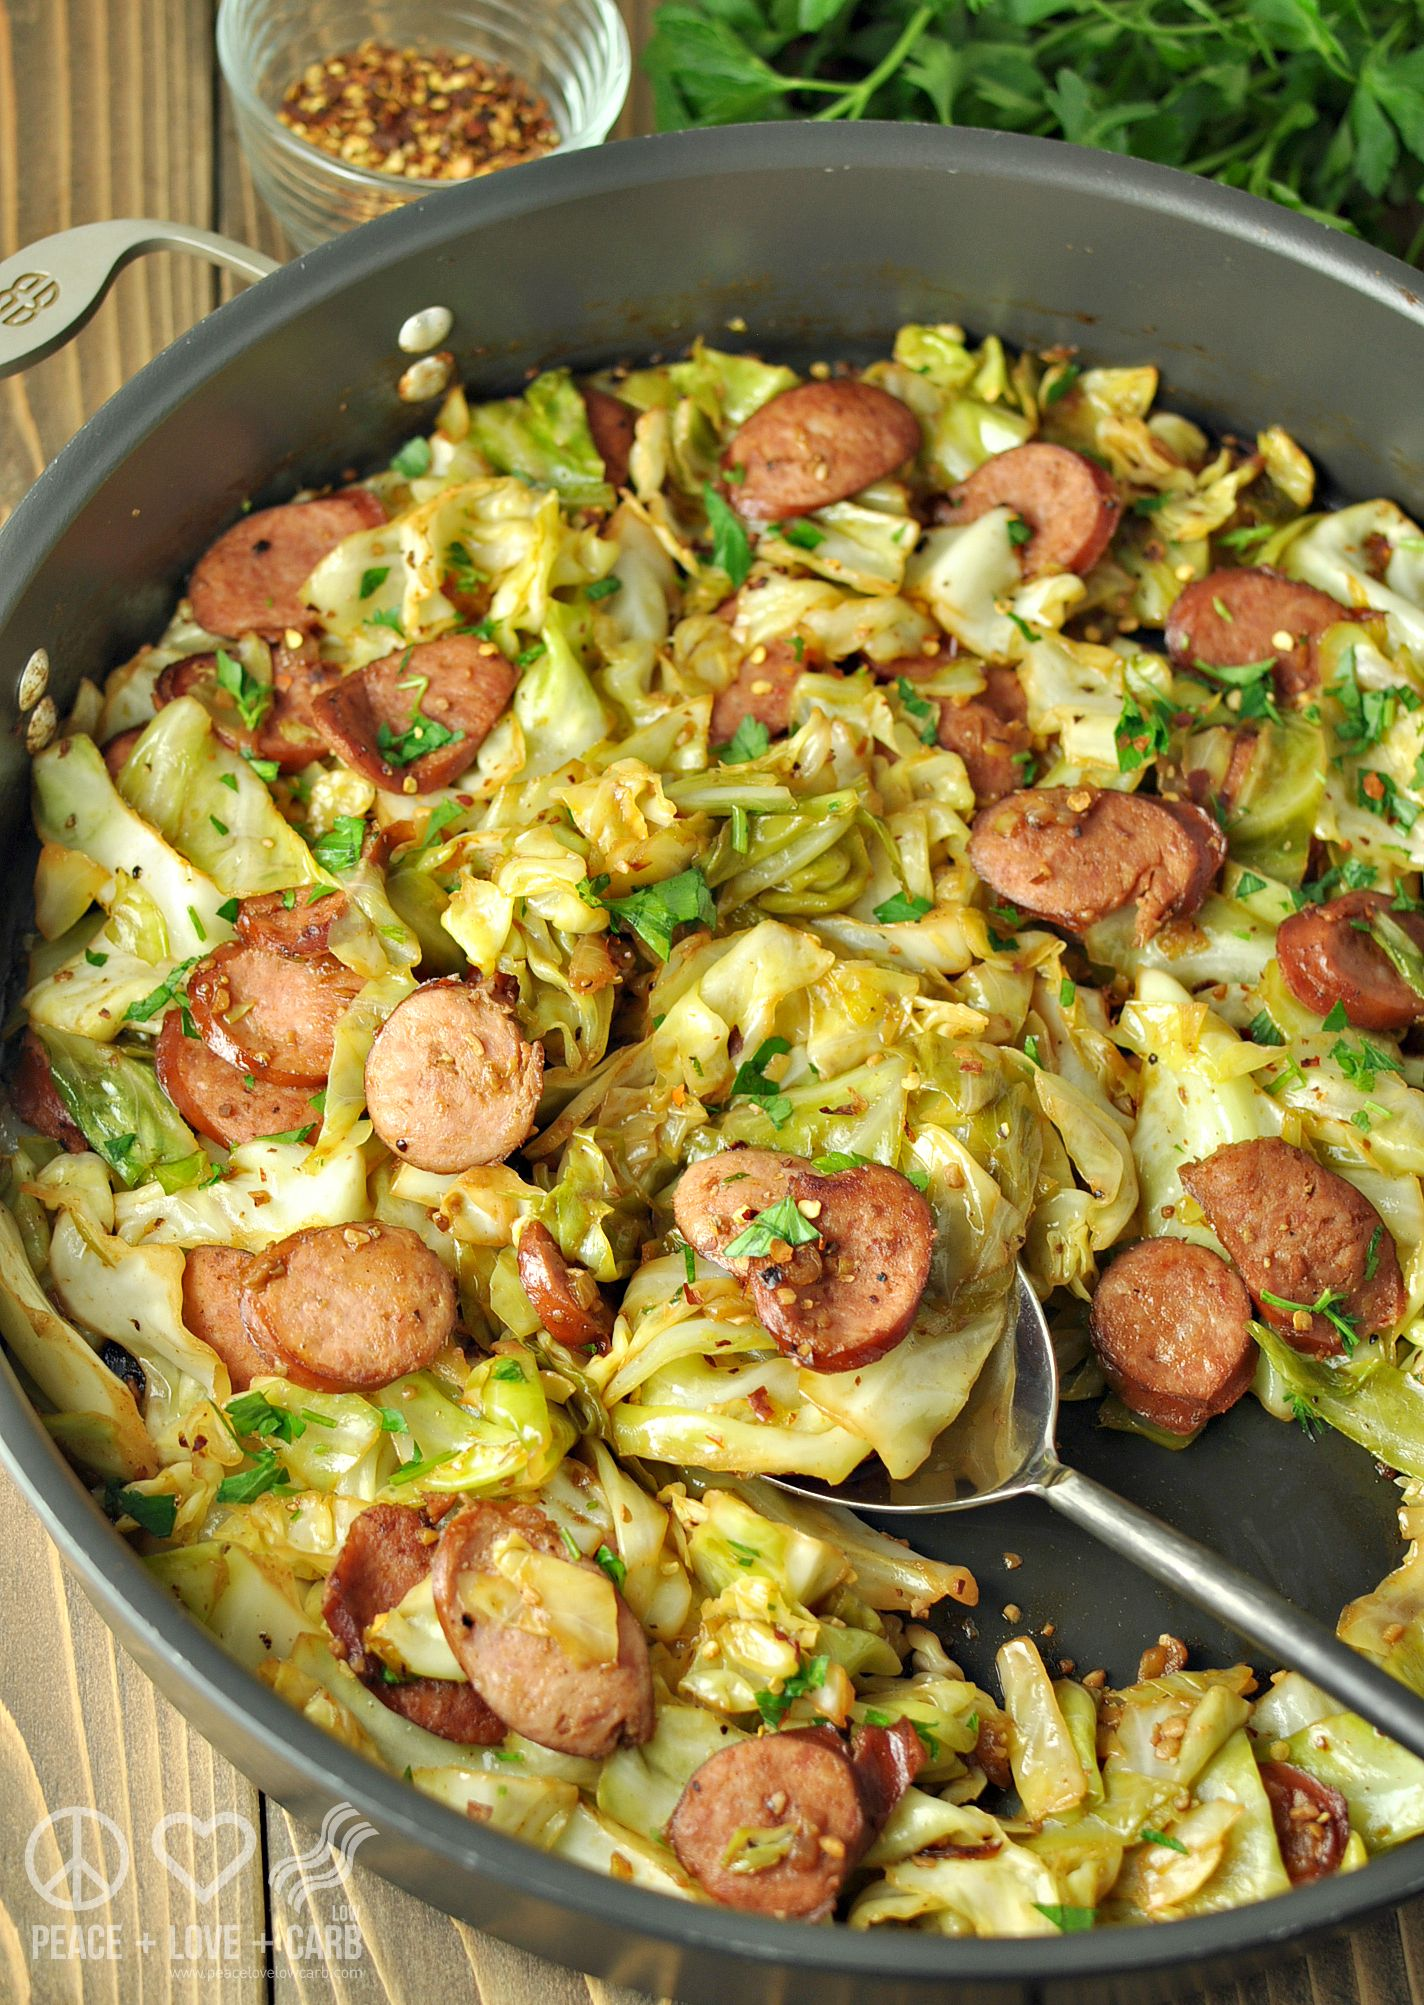 Recipes Using Smoked Sausage And Cabbage